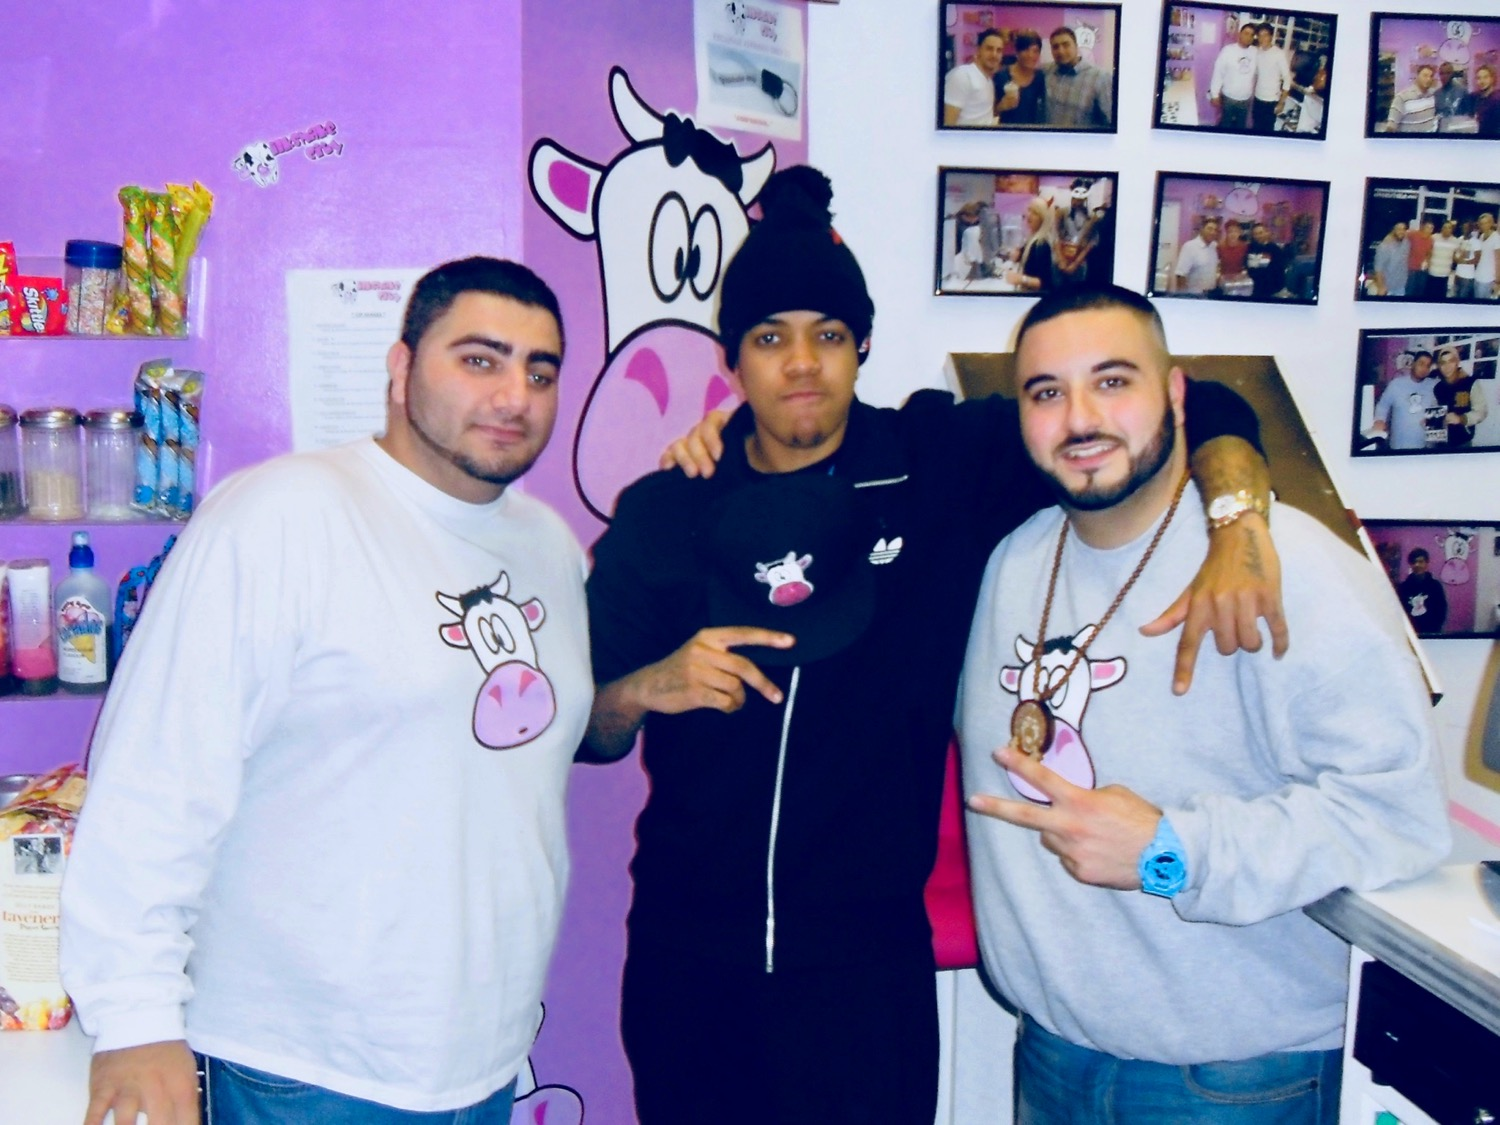 Chip at Milkshake City